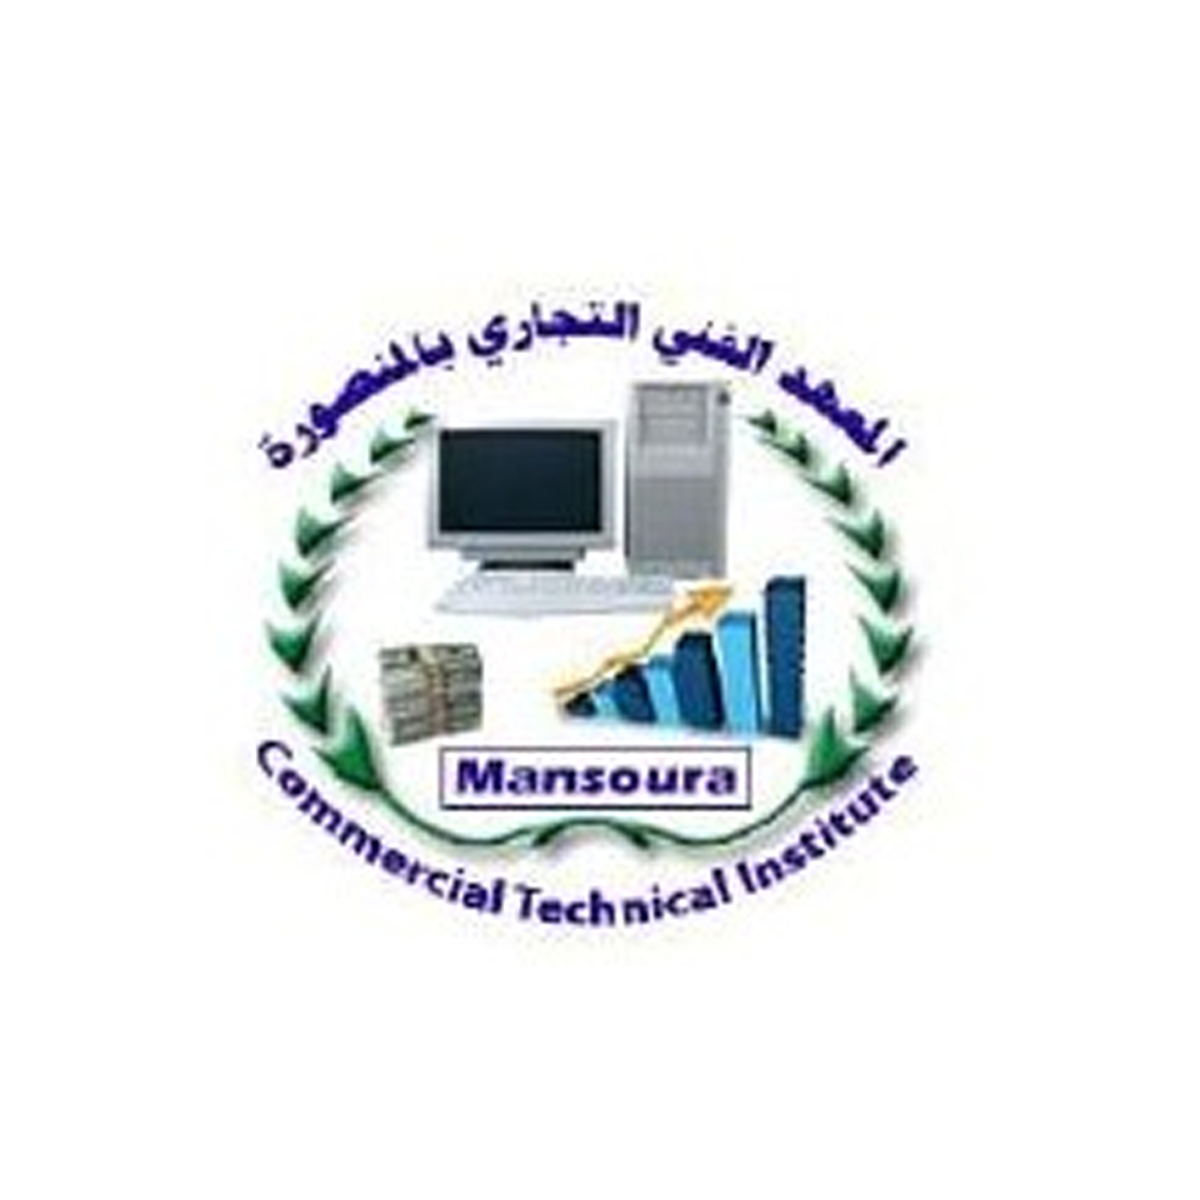 Commercial Technical Institute - Mansoura